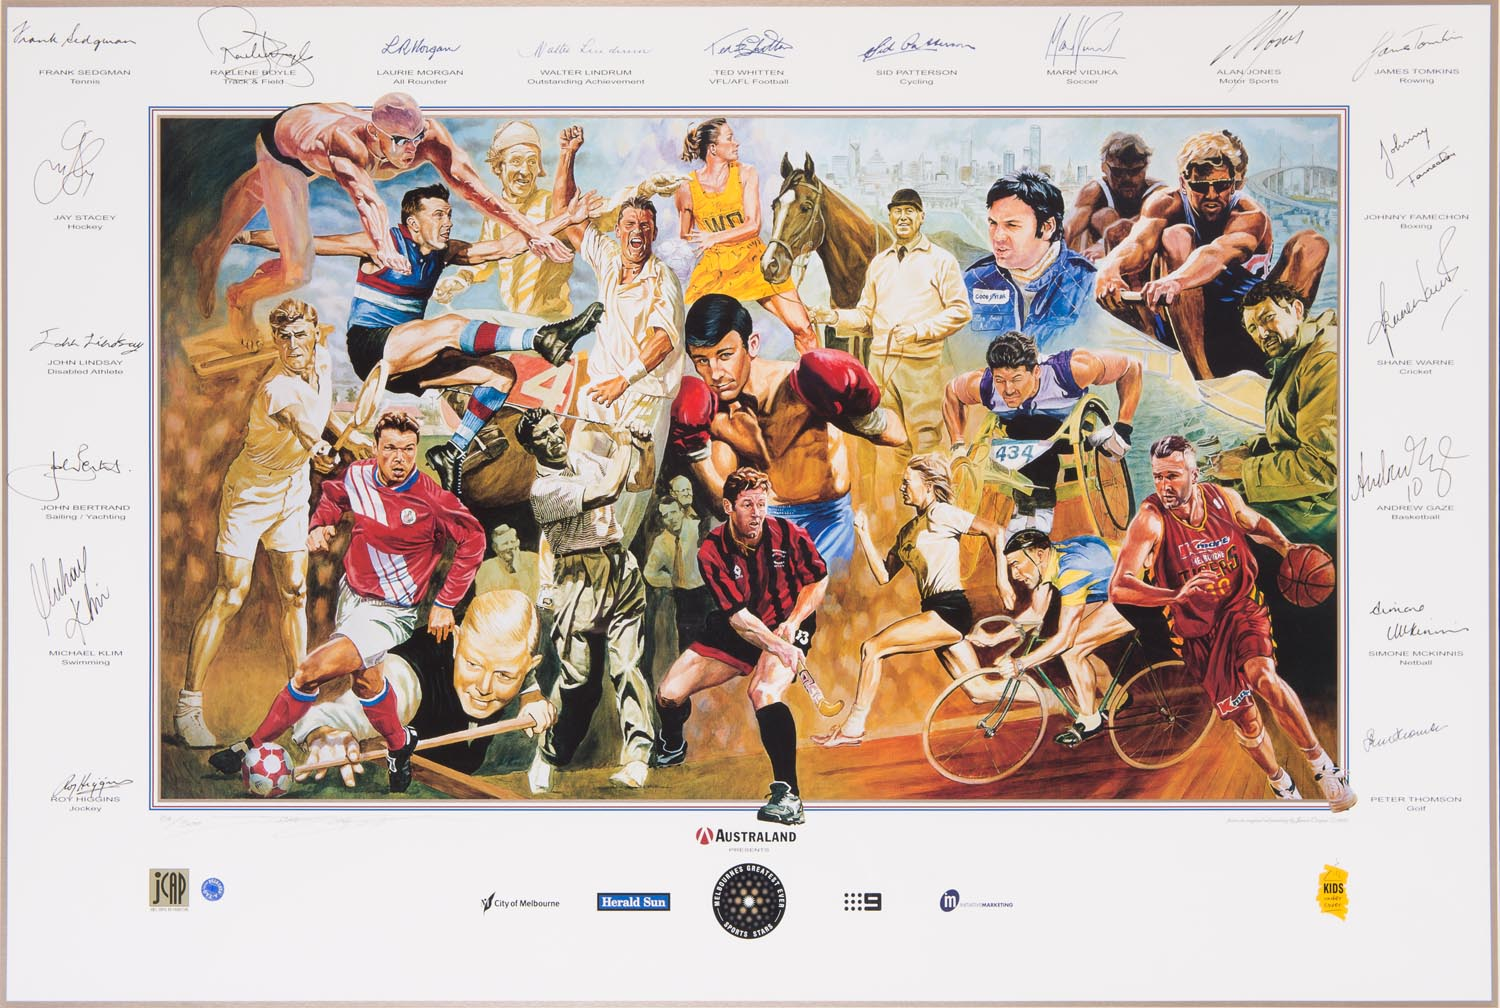 Melbourne 39 s greatest ever sports stars 39 print by jamie for Chaise klim